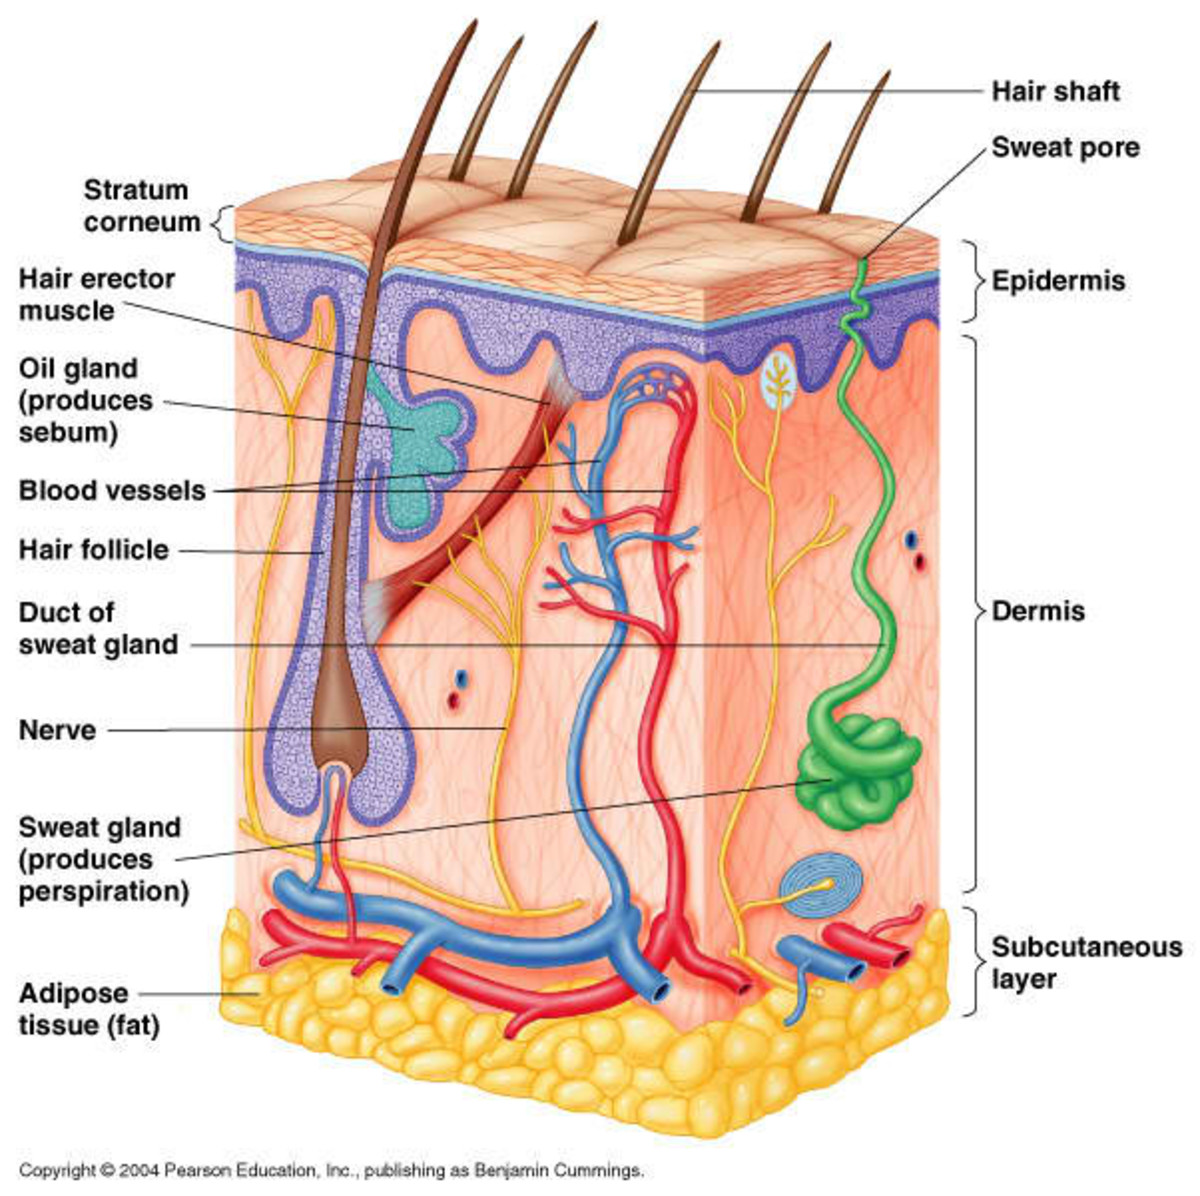 The human skin is considered as the largest organ of the integumentary system  and one of the most important parts of the body.